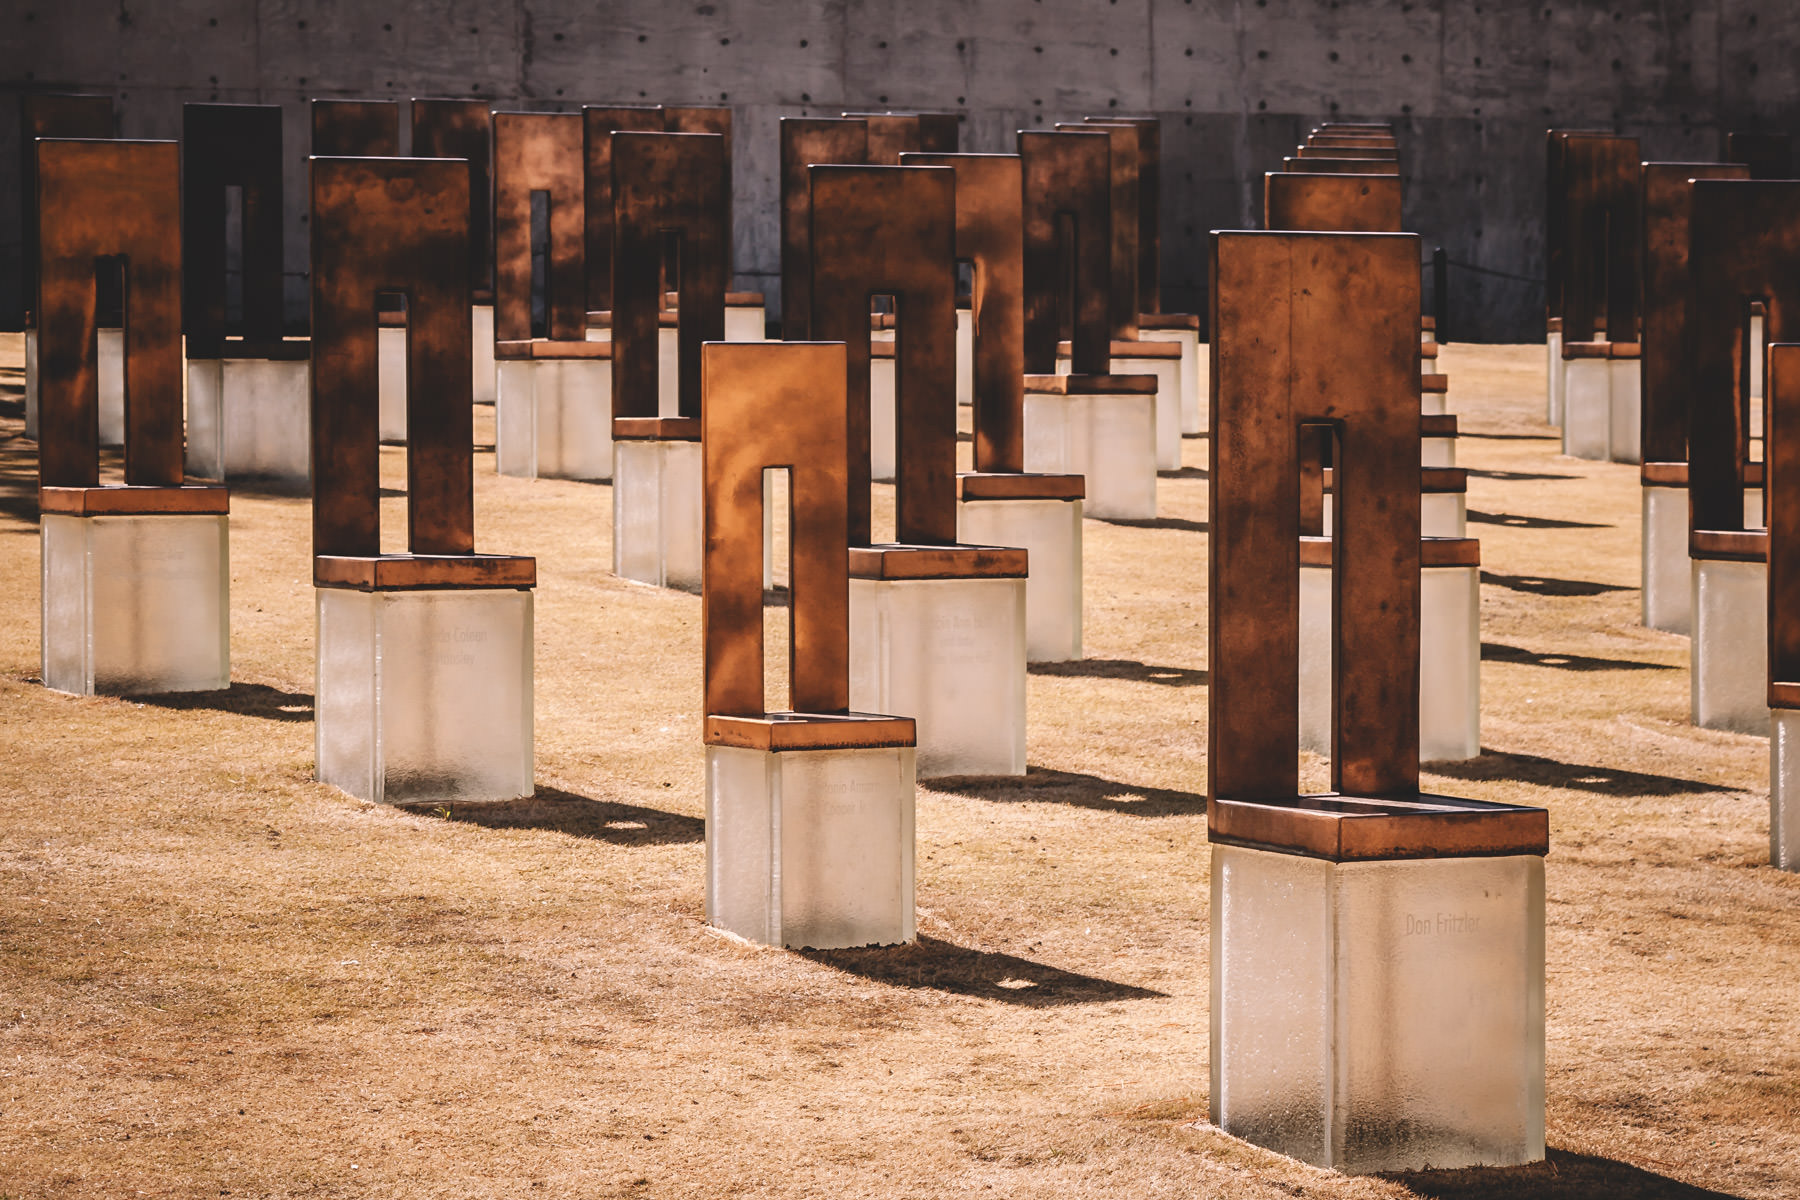 A few of the 168 empty chairs at the Oklahoma City National Memorial that represent those who lost their lives in the Oklahoma City bombing on April 19, 1995.